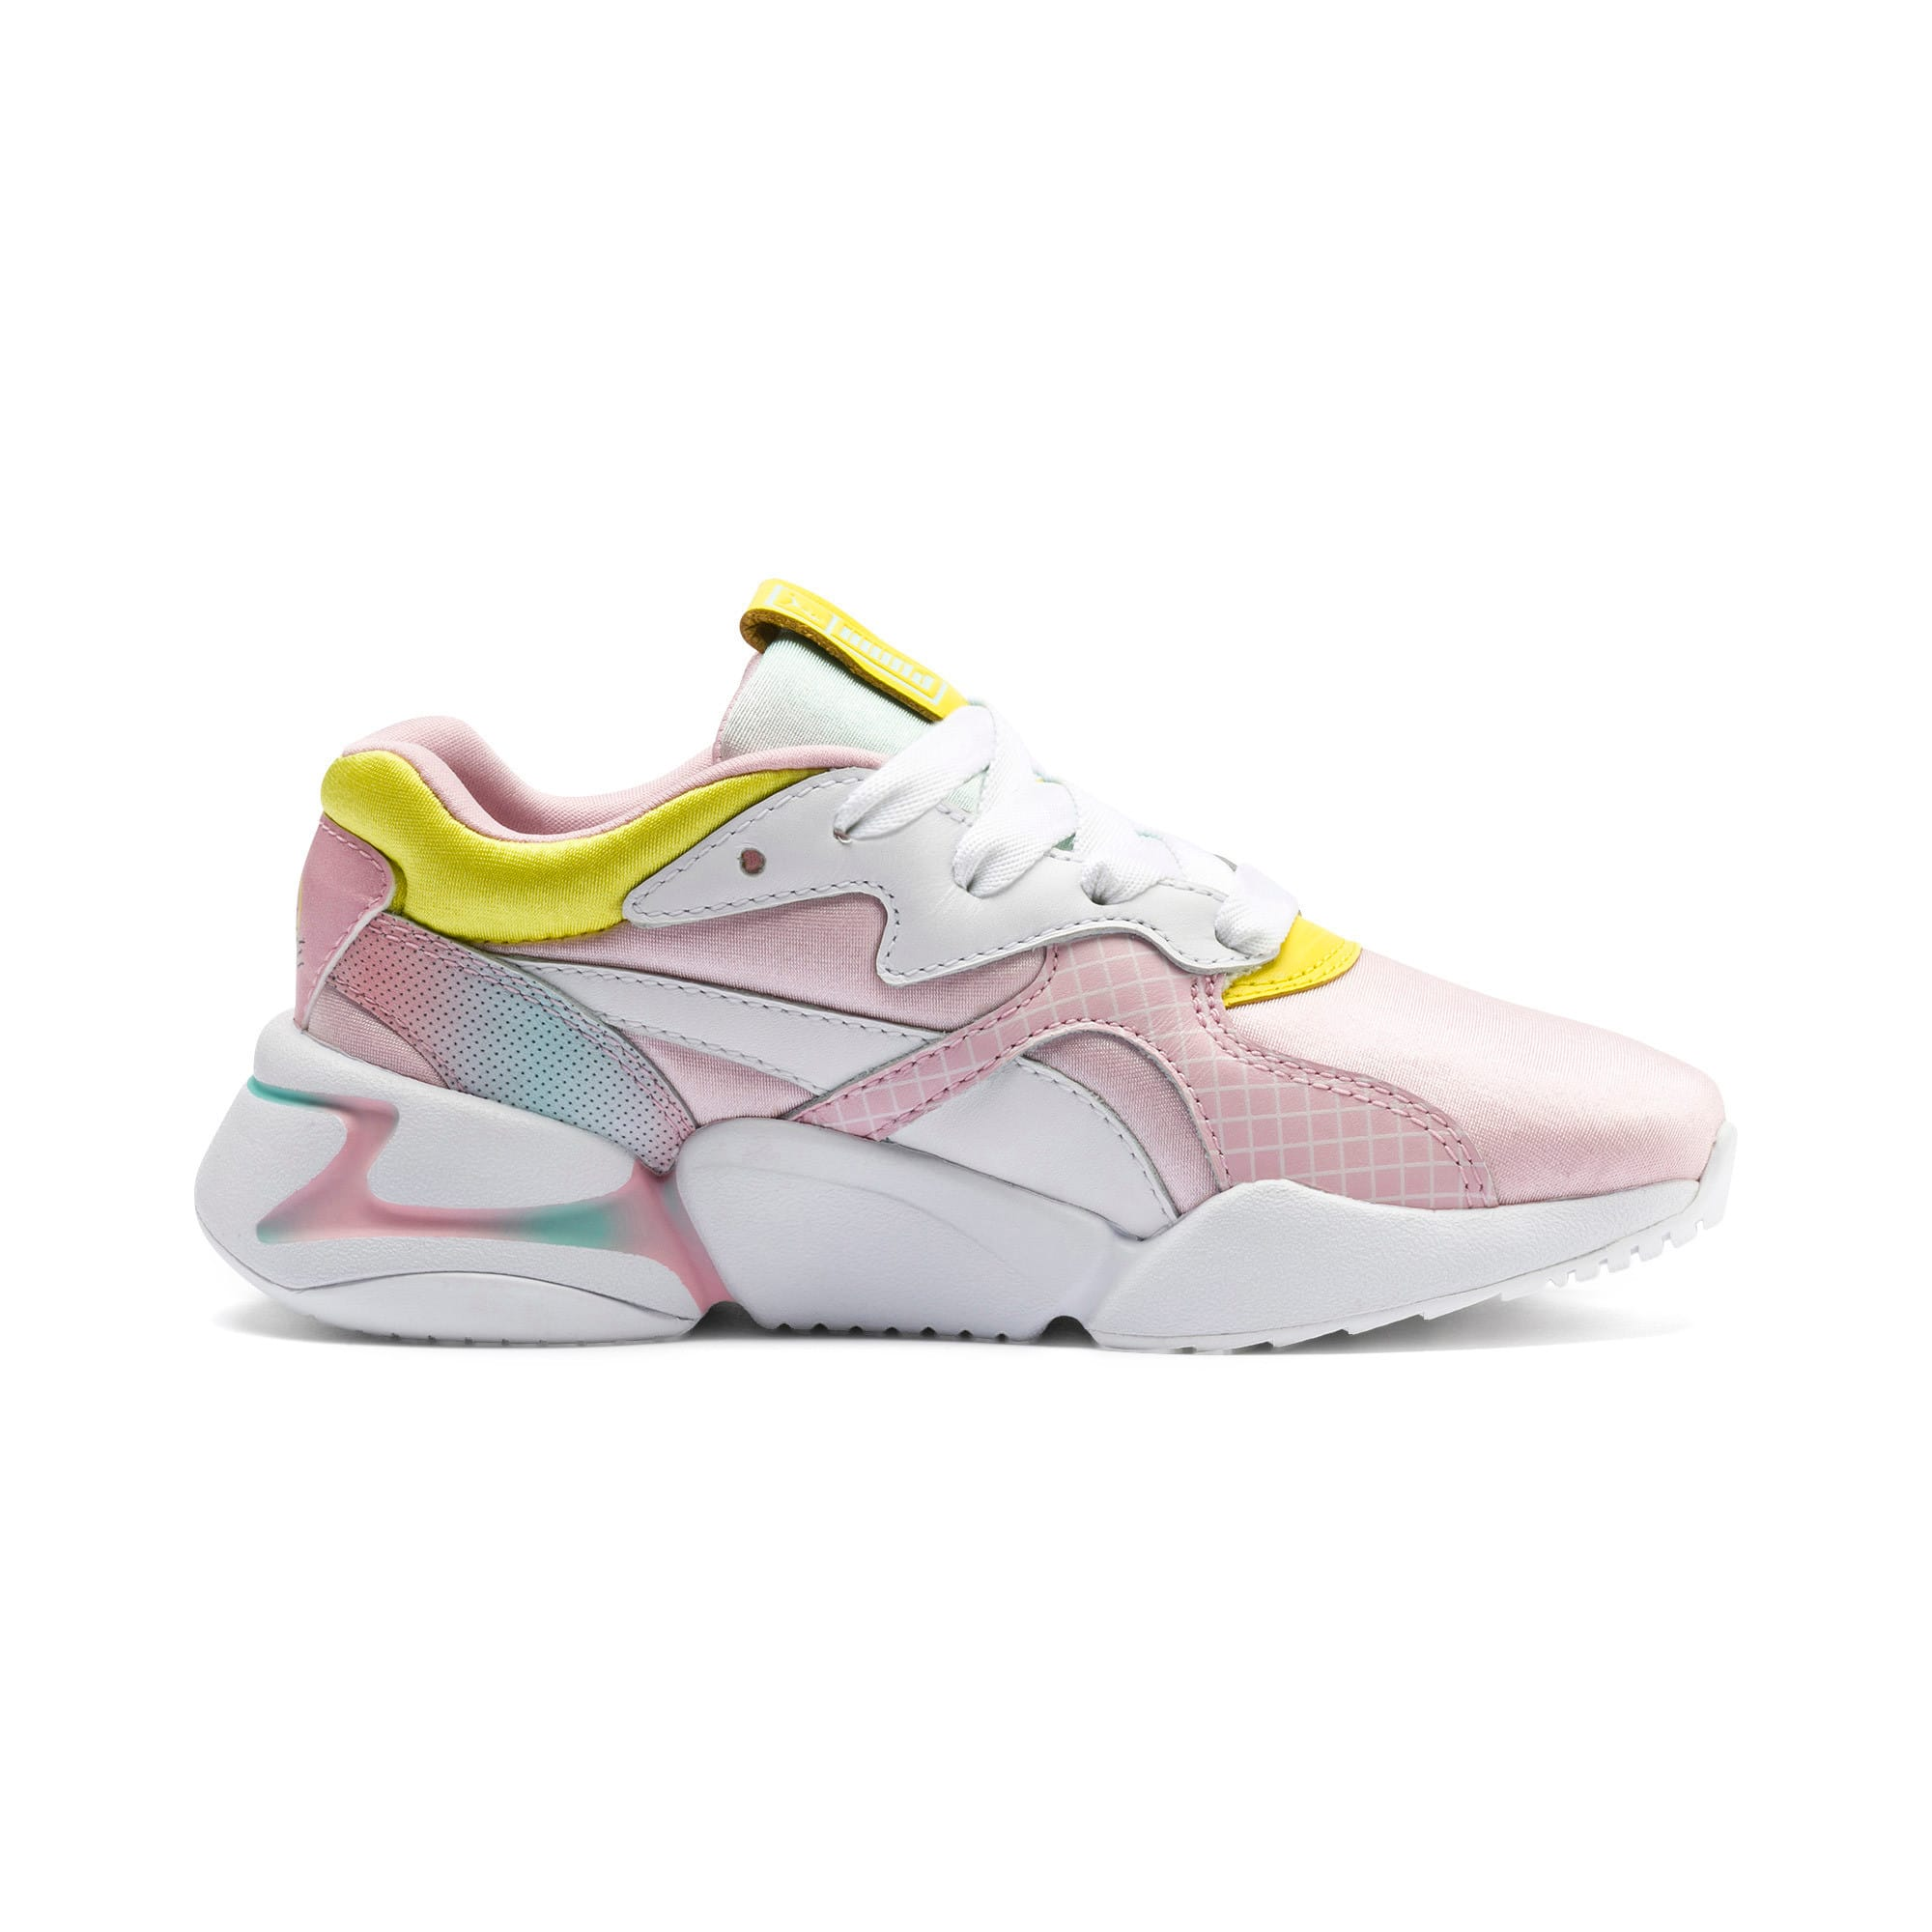 Thumbnail 5 of Nova x Barbie Little Kids' Shoes, Orchid Pink-Puma White, medium